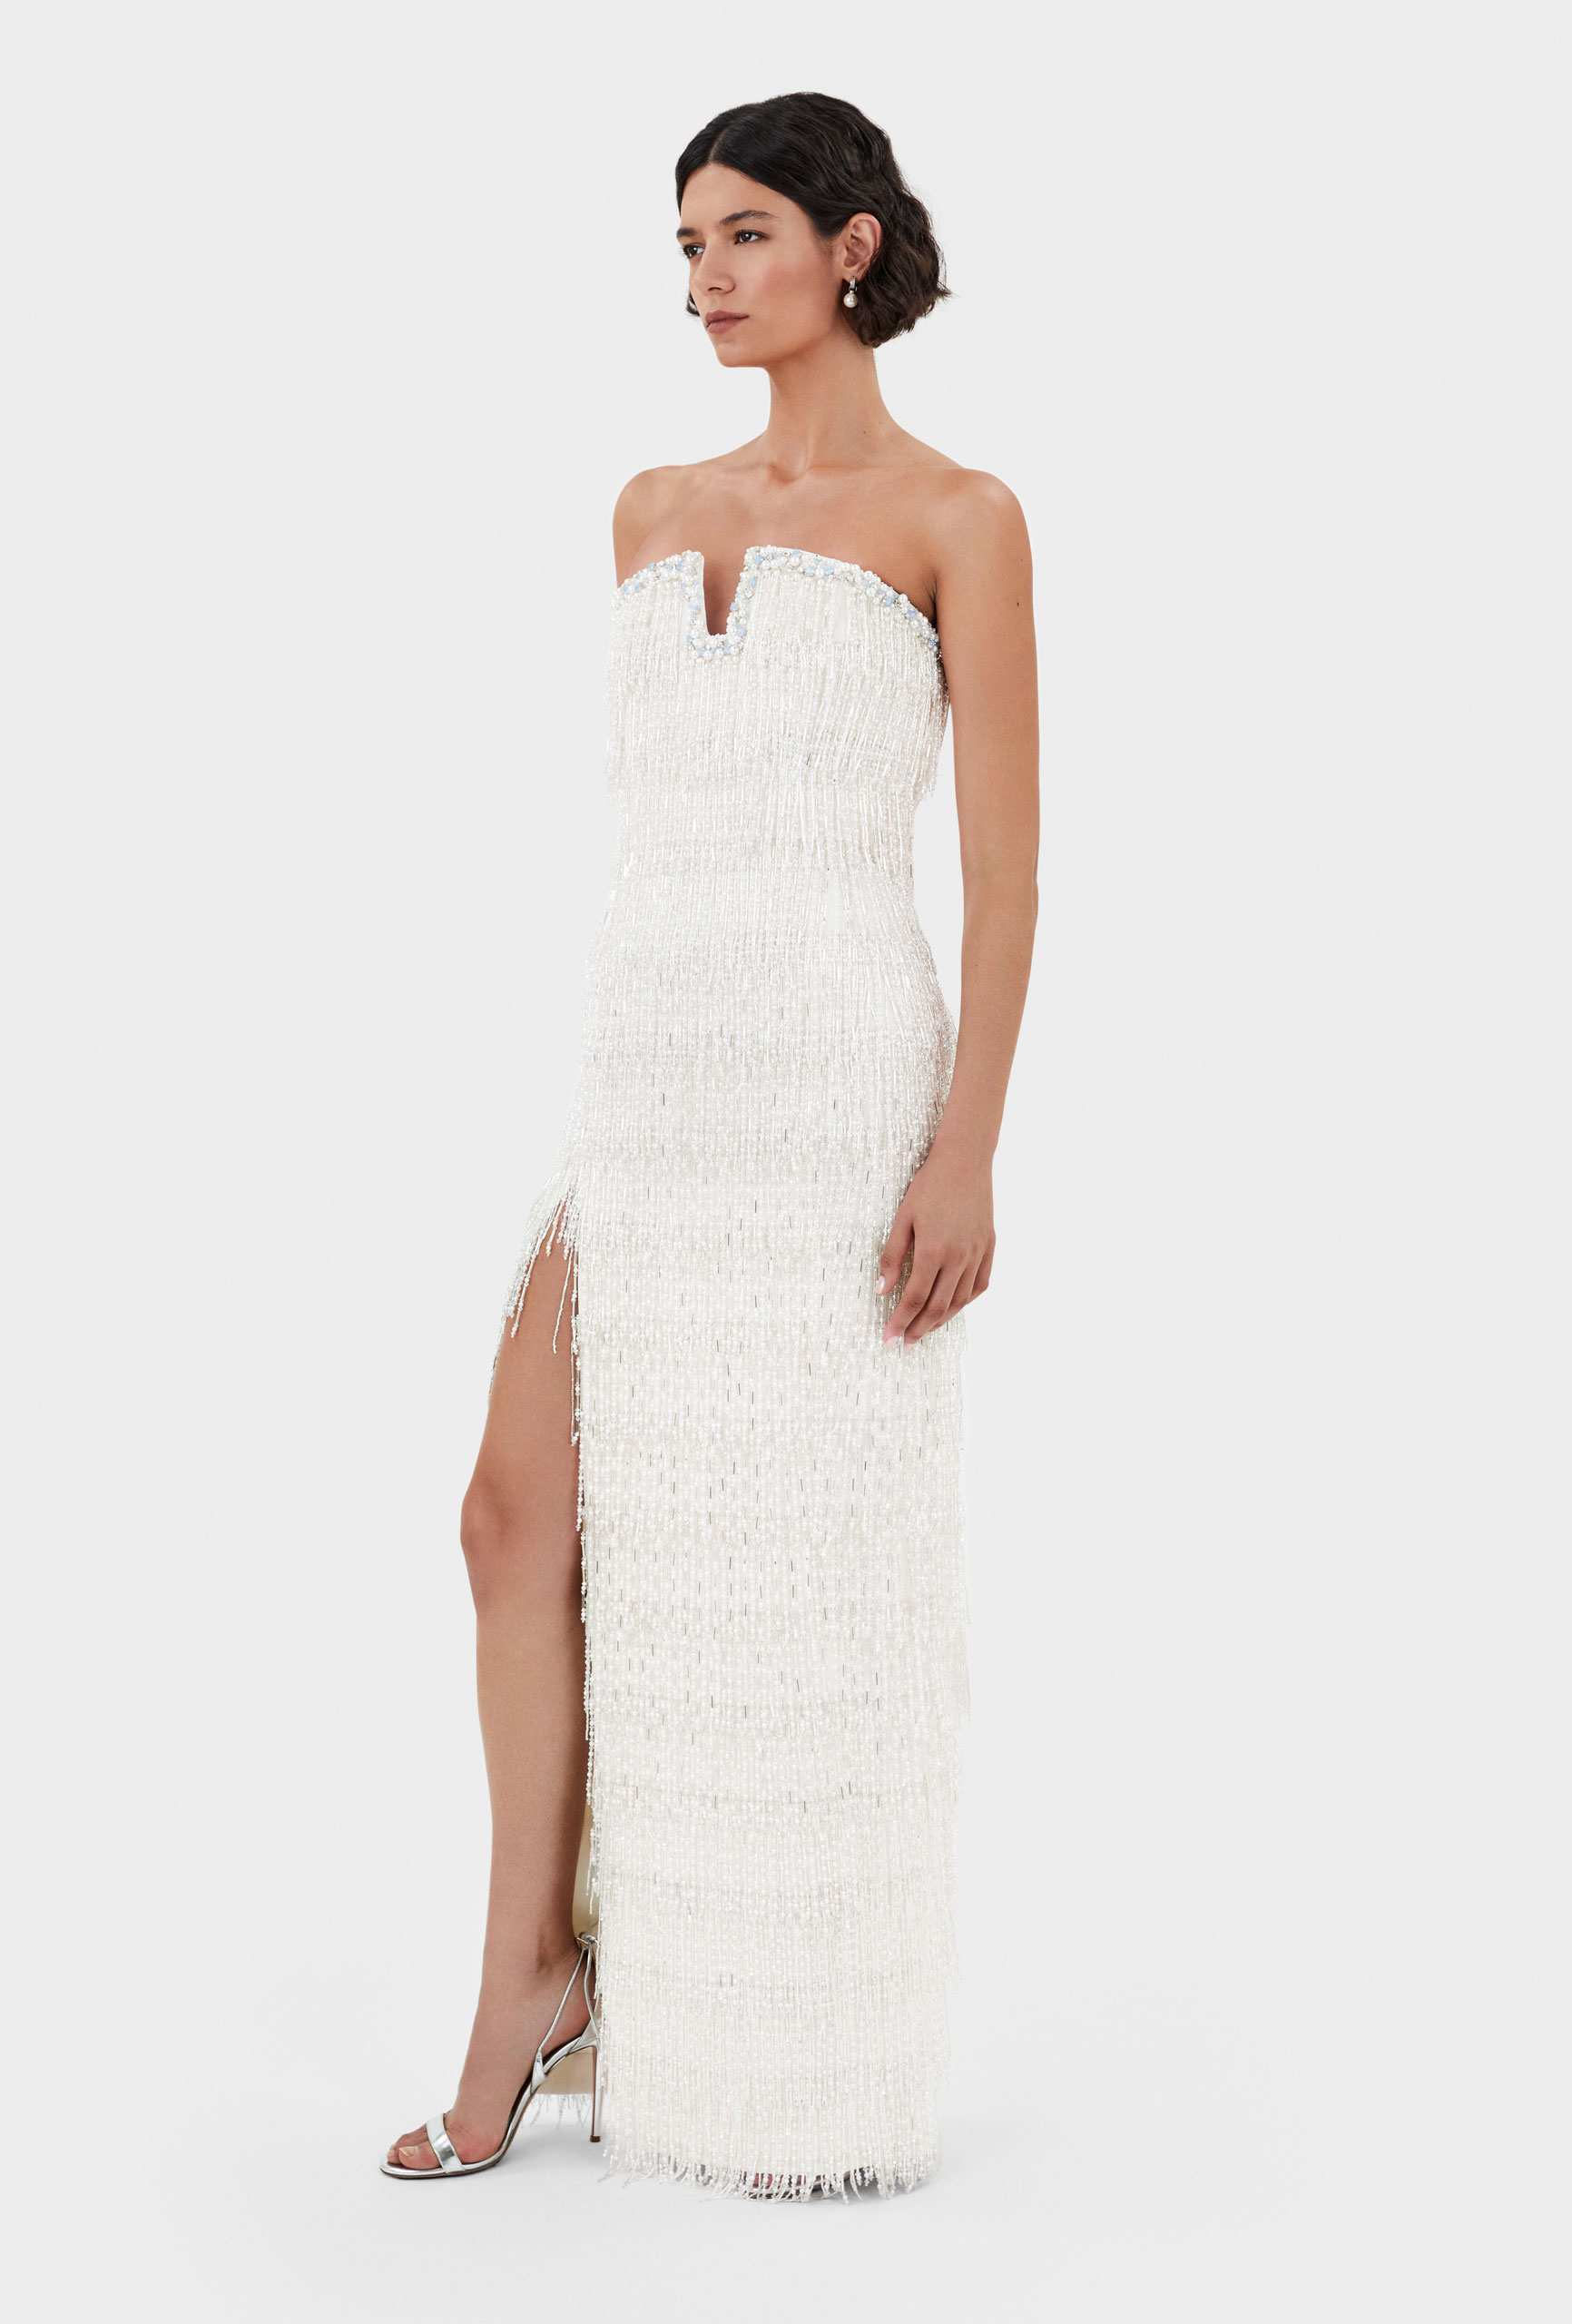 Thom Laurence Dress, Crystal and pearl fringes, crusted bustline, Italian crepe lady, hand embellishment, made in London